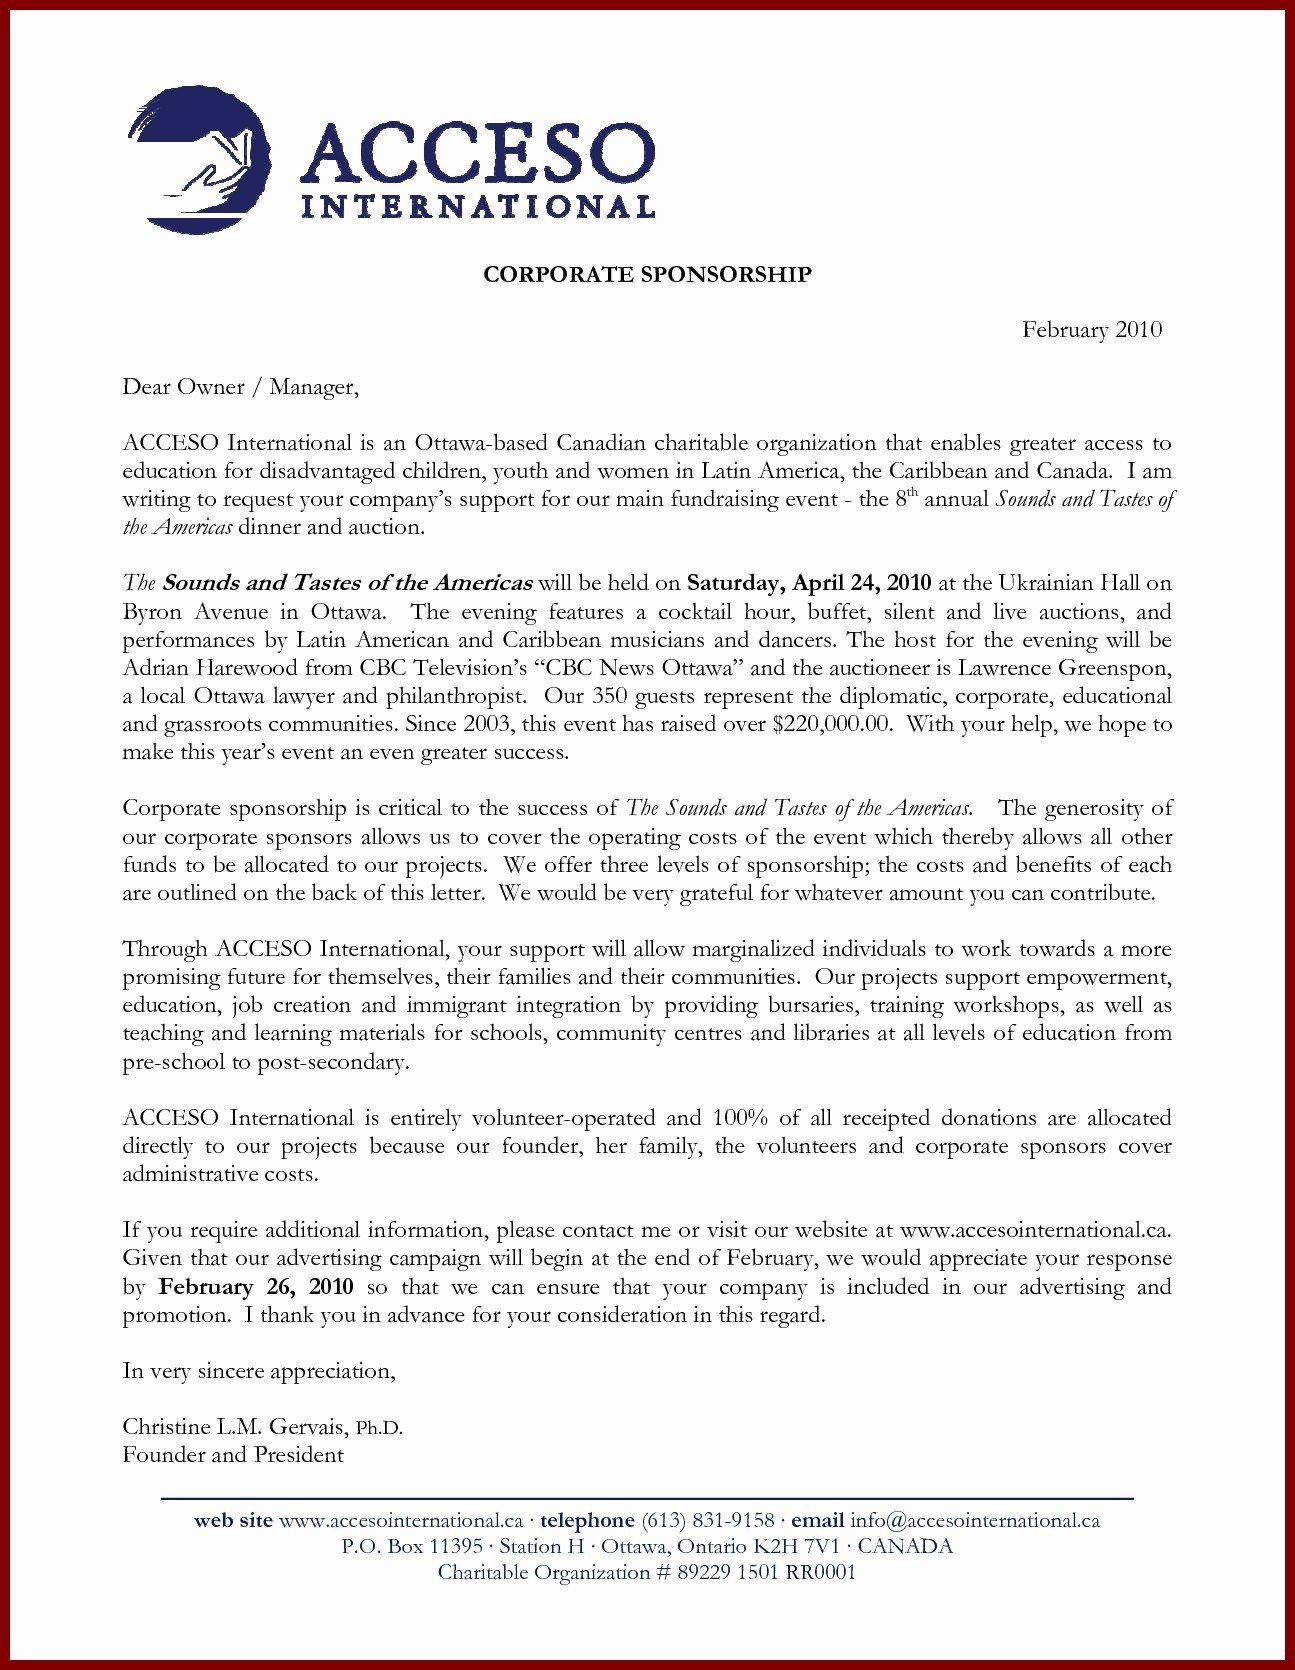 Sponsorship Letter Template Free - Sample Certificate Beauty Pageant Copy Free Sponsorship Letter